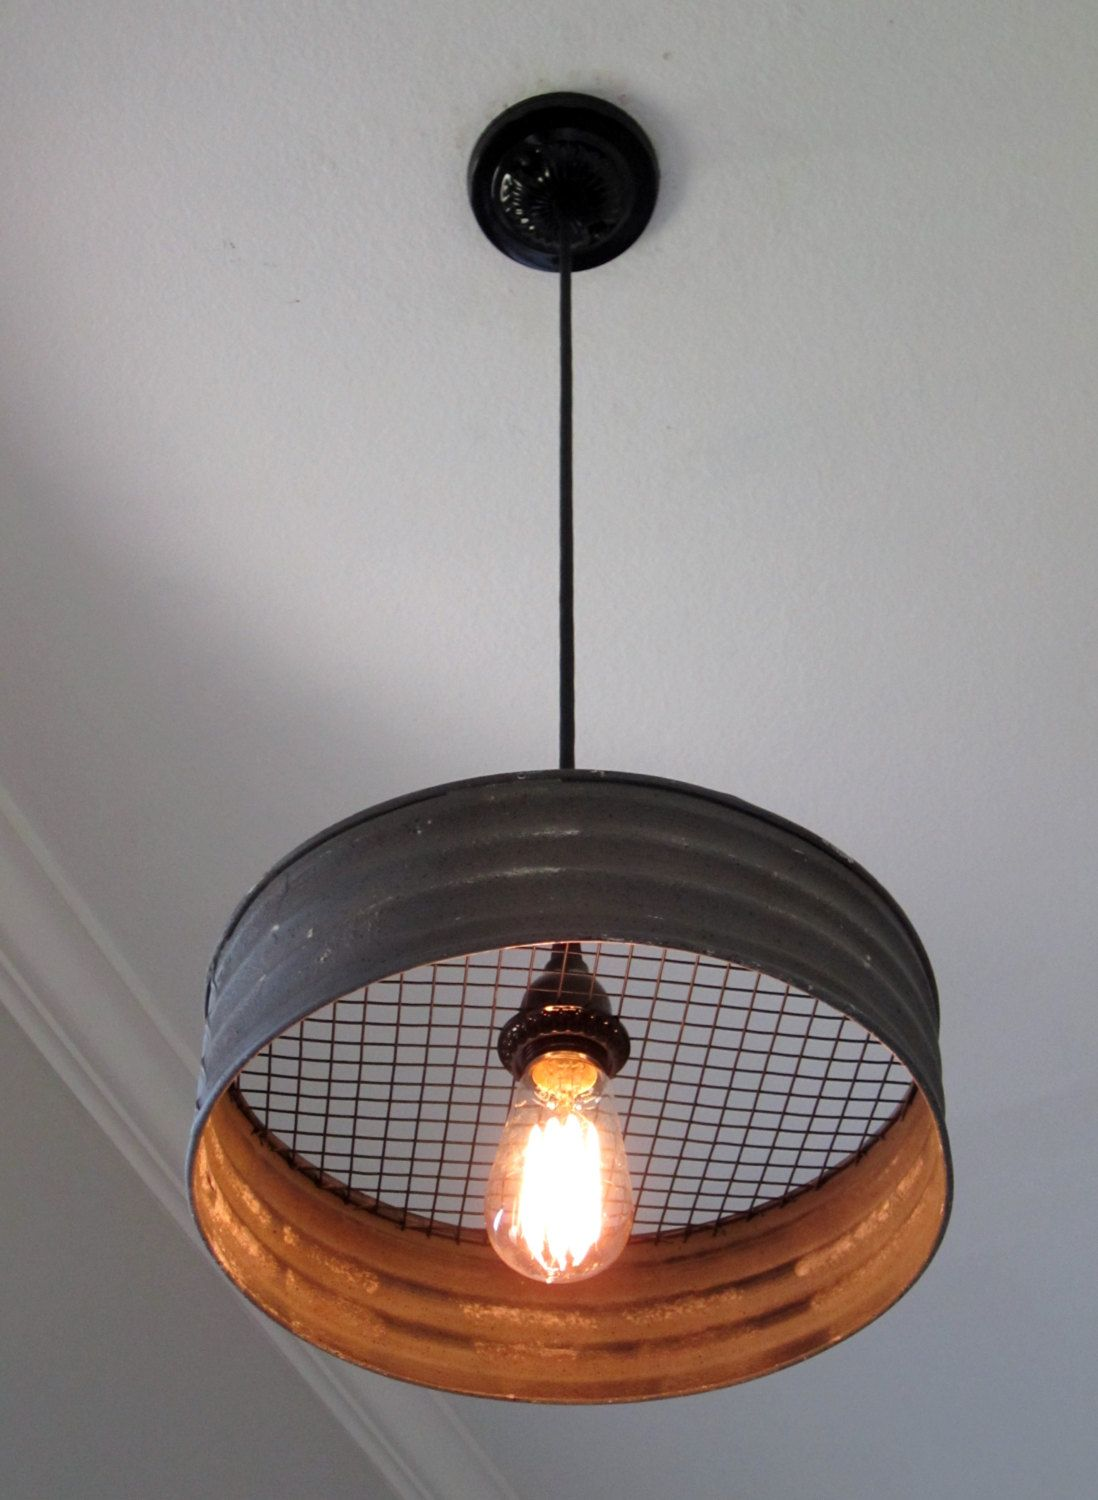 industrial kitchen lighting pendants. Lighting Metal Sifter Pendant - Rustic Lighting, Industrial Ceiling Light, Kitchen Pendants